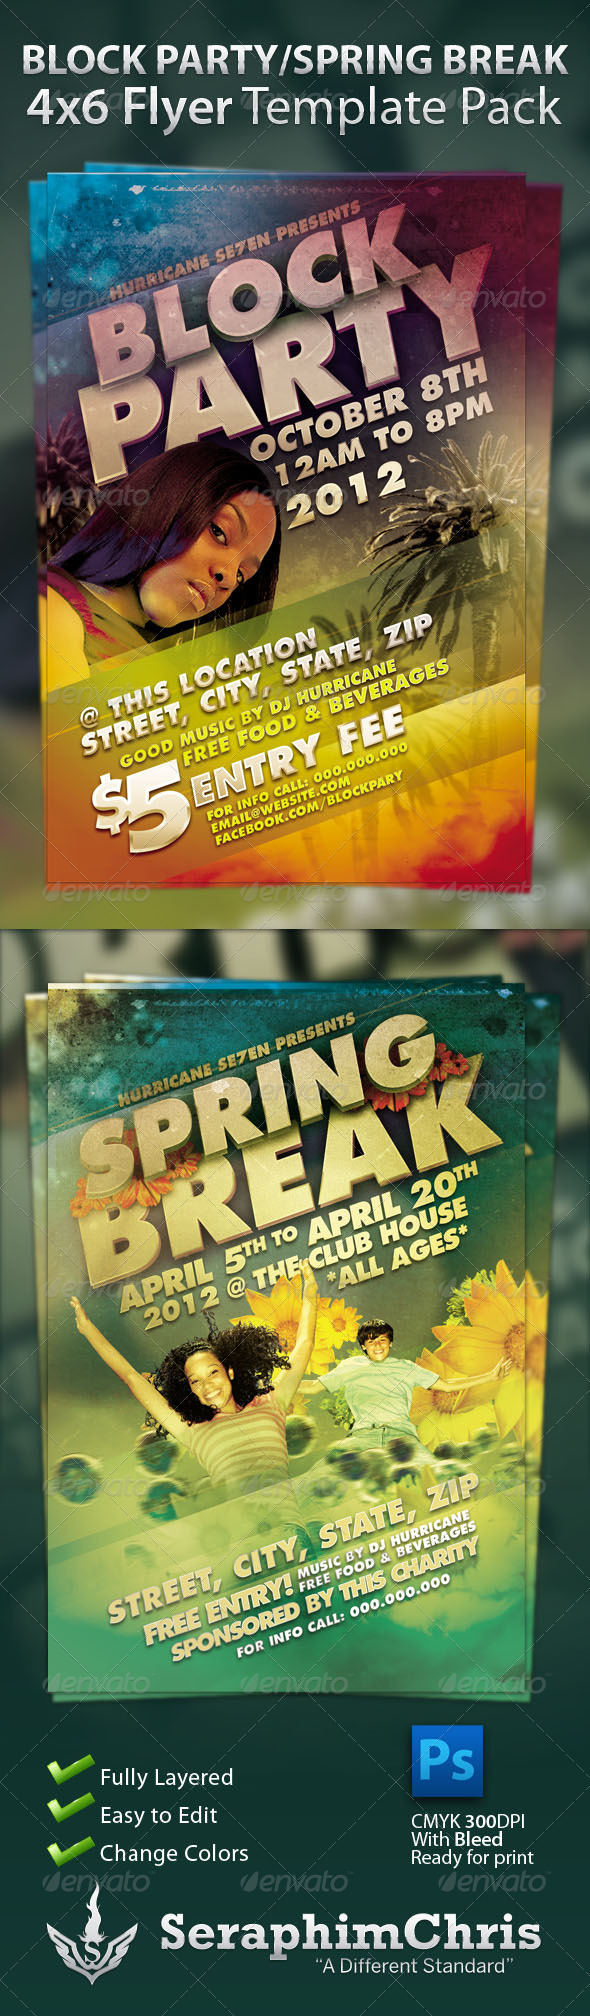 block party template flyers free - block party and spring break flyer template pack by